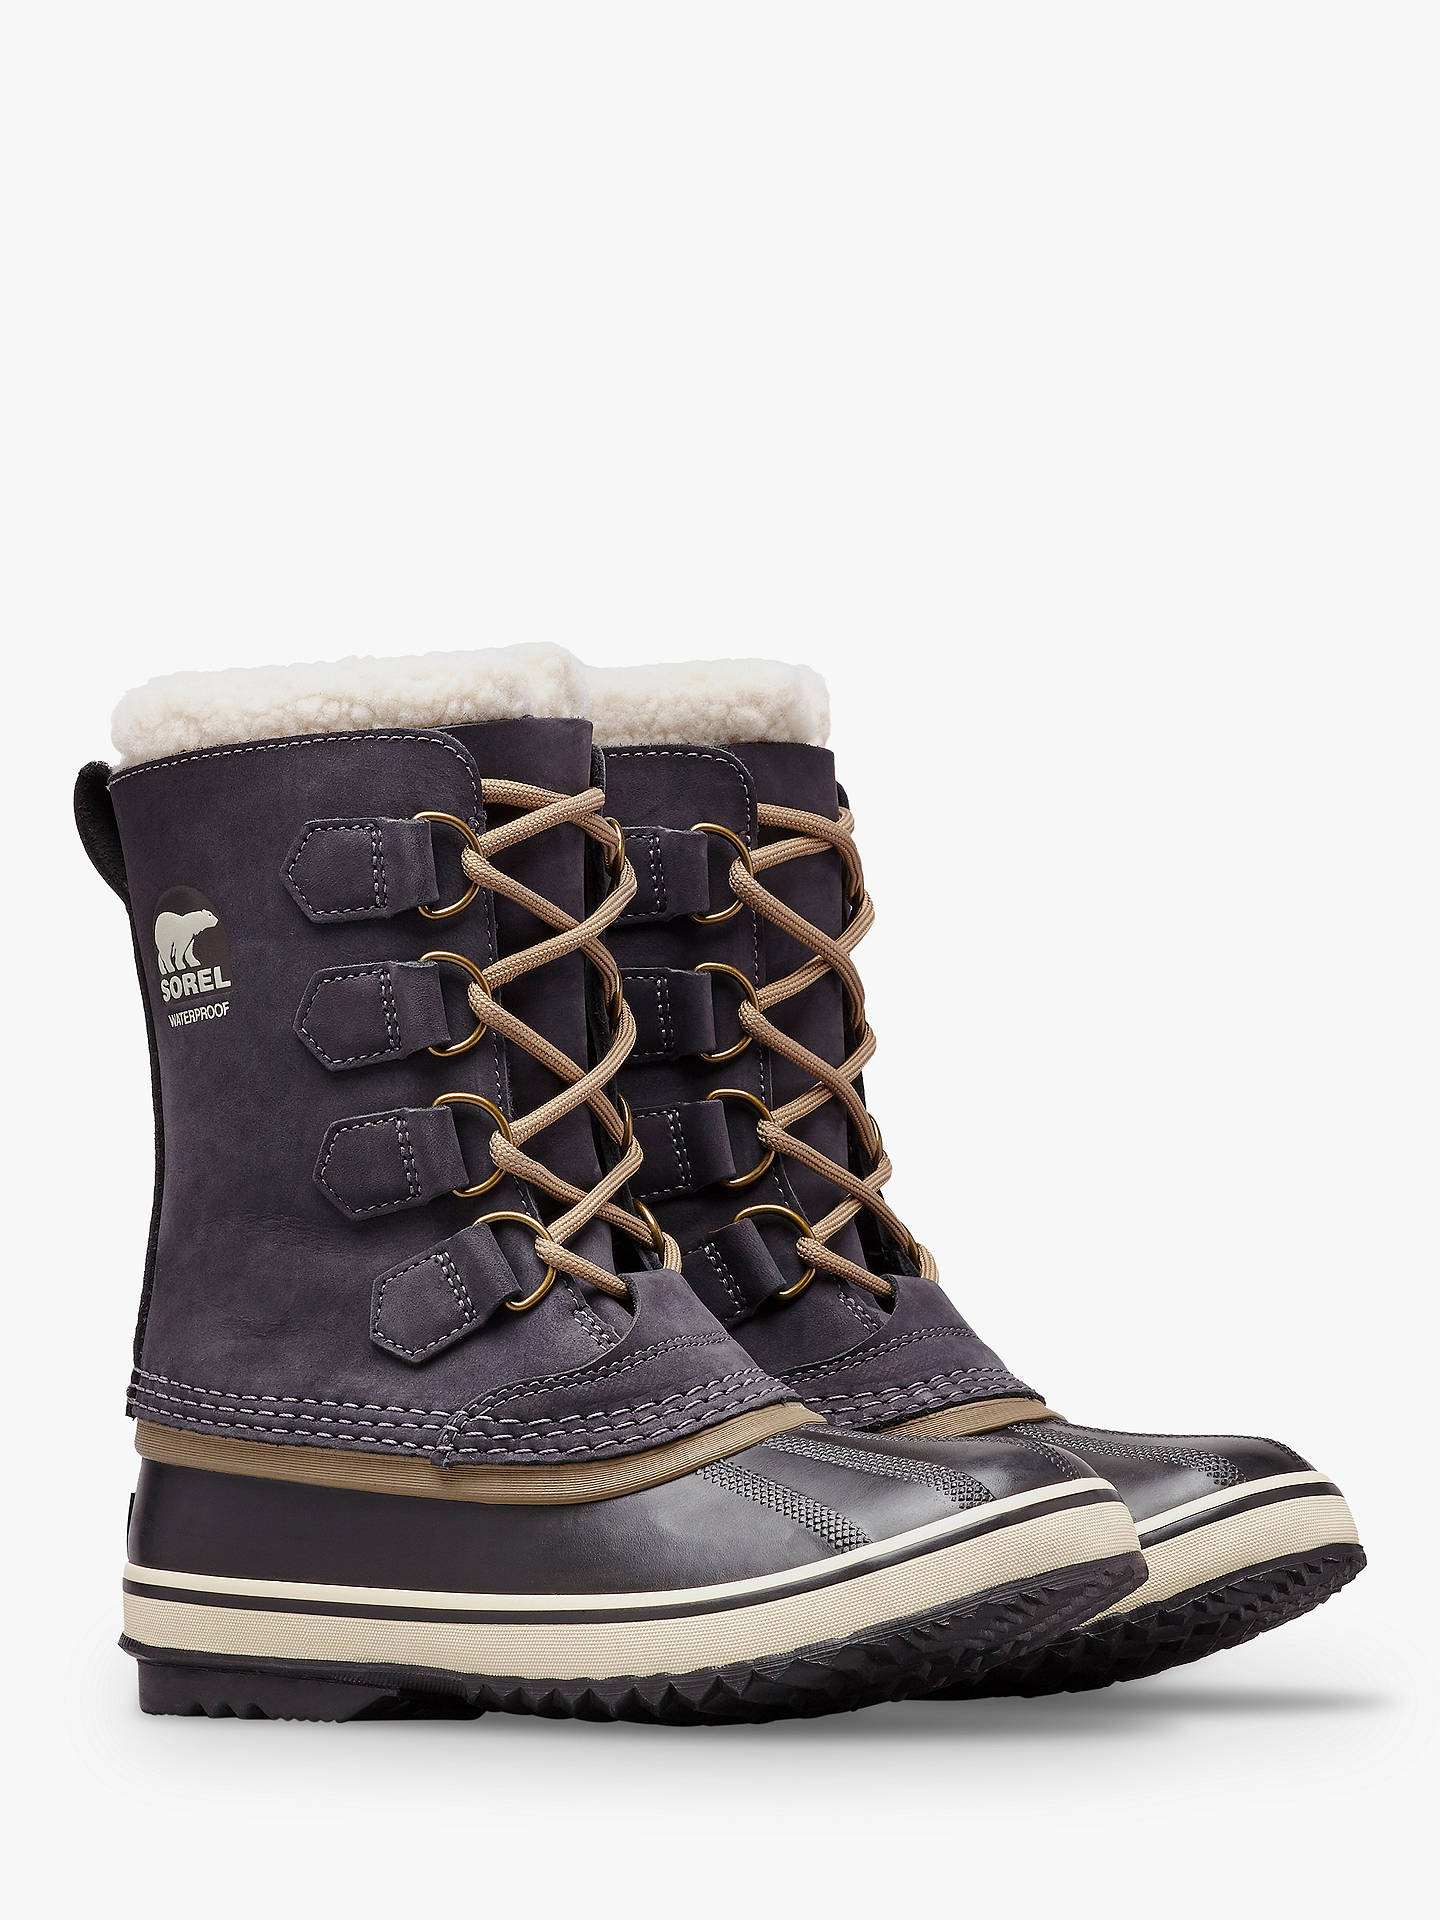 Buy Sorel PAC2 Lace Up Waterproof Ankle Snow Boots, Black Leather, 6 Online at johnlewis.com